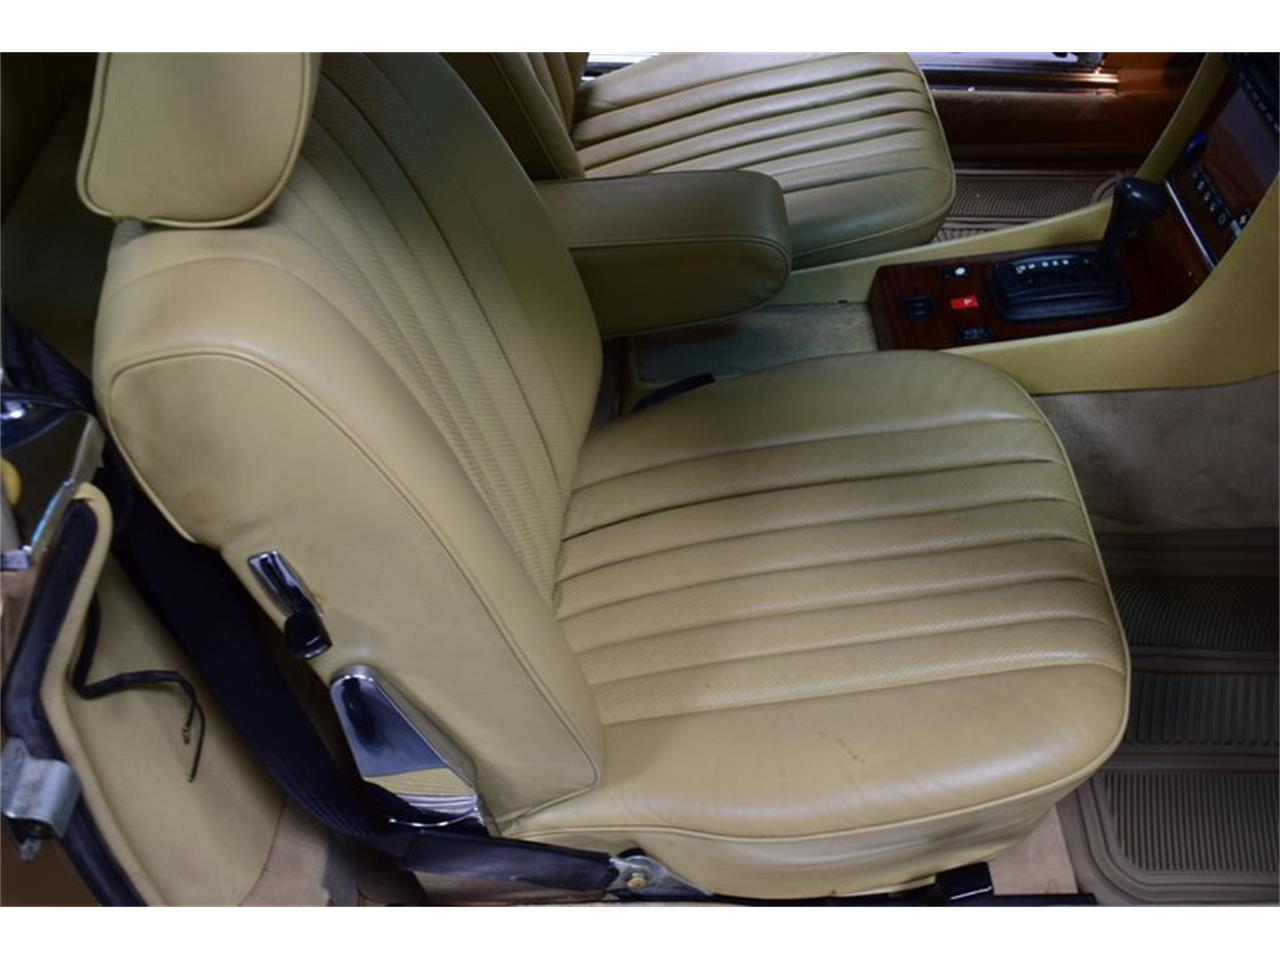 1983 Mercedes-Benz 380 for sale in Mooresville, NC – photo 43